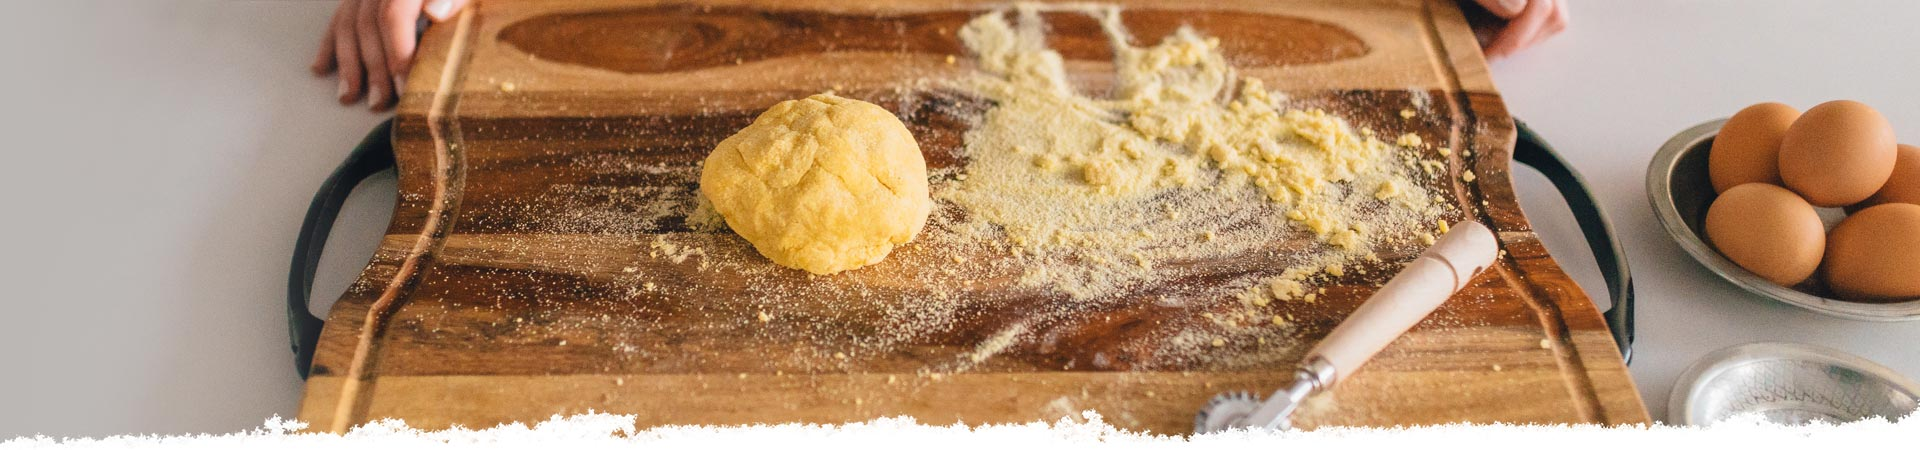 Make Your Own Pasta Dough